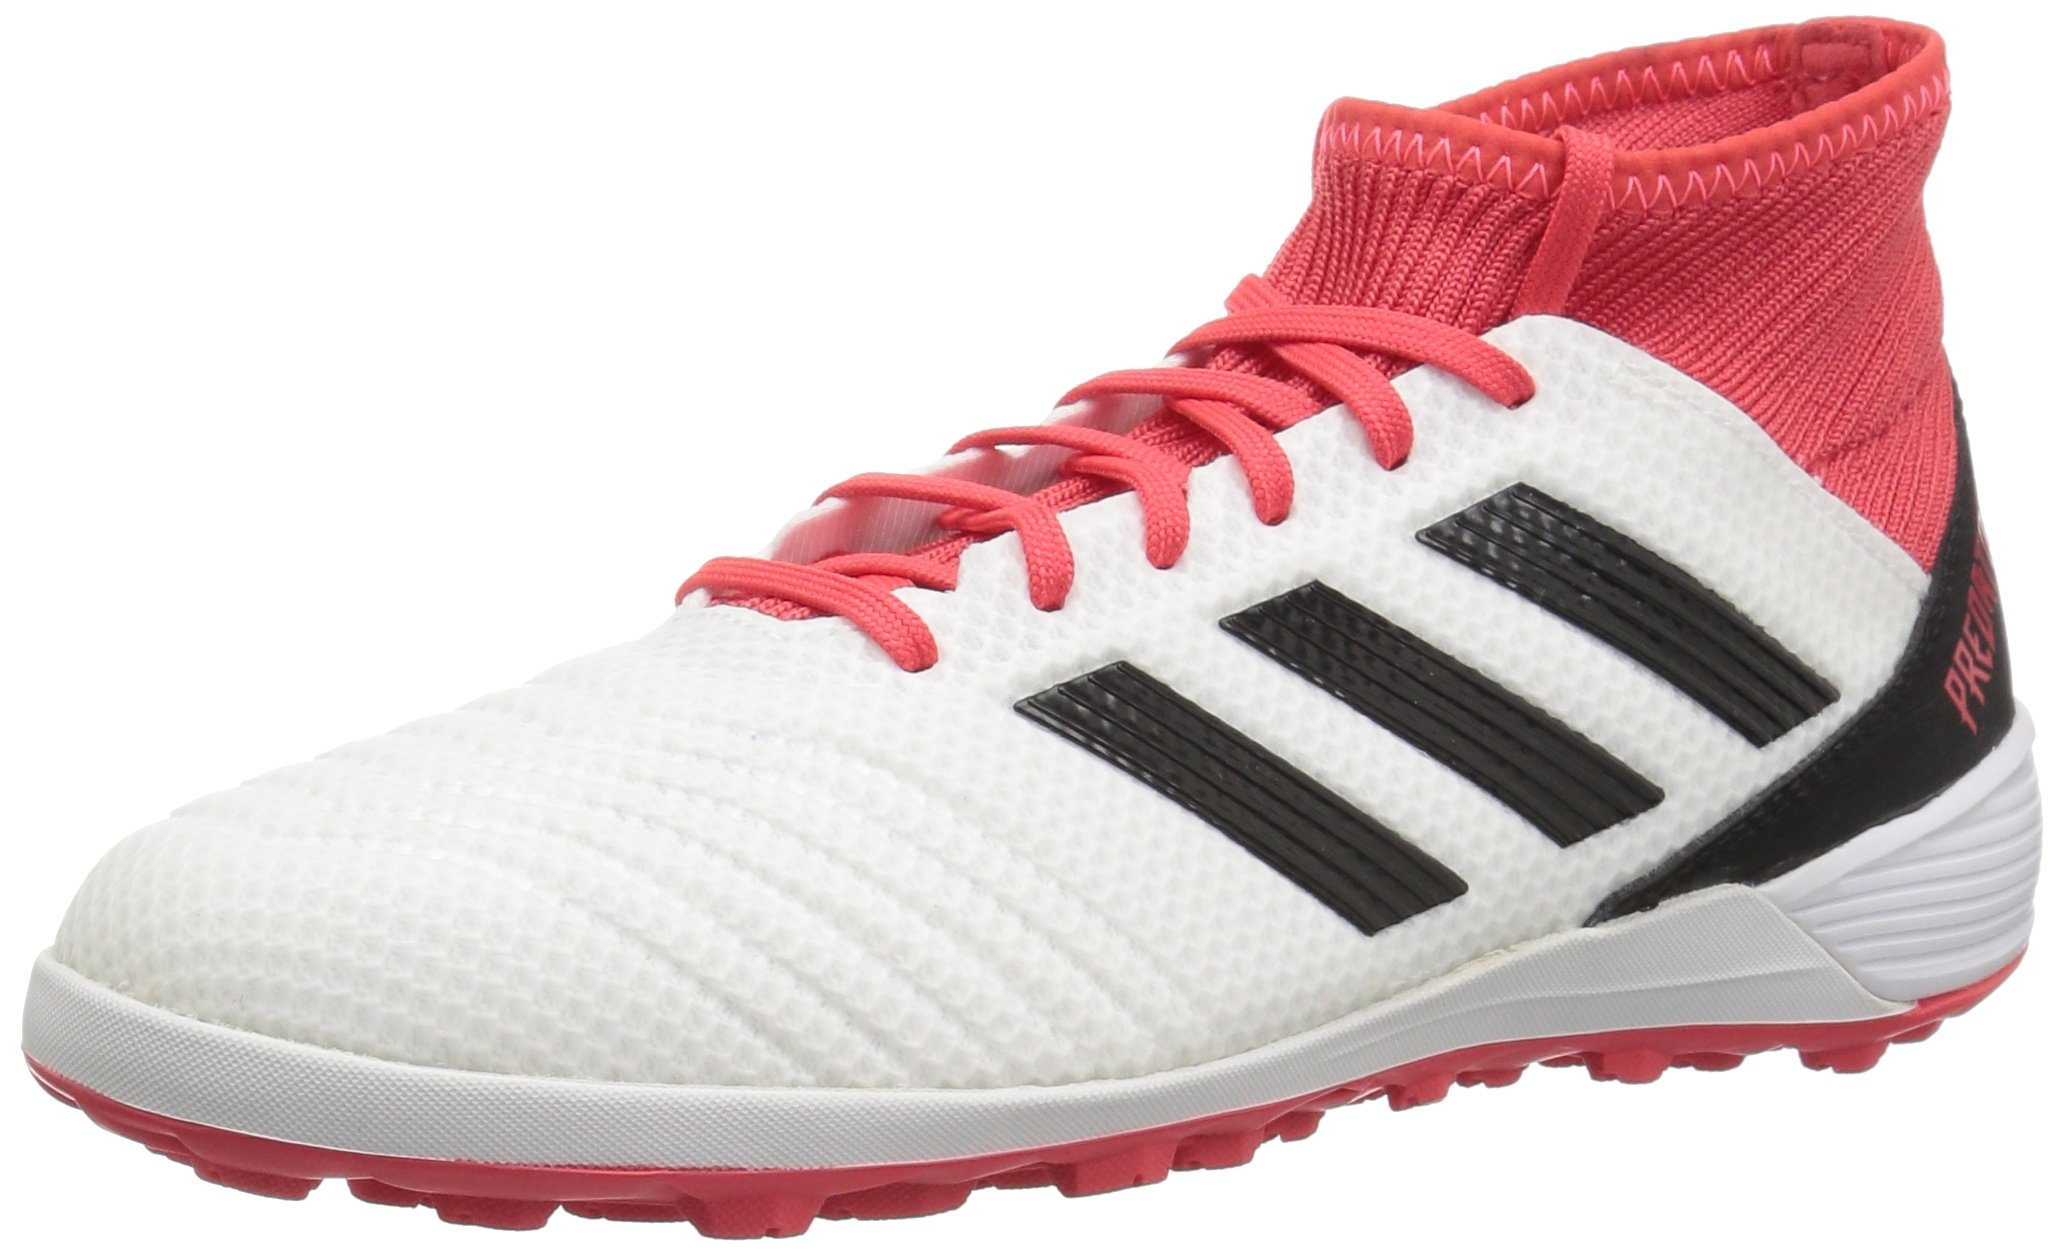 adidas Performance Unisex-Mens Ace Tango 18.3 TF, White/Core Black/Real Coral, 7 M US